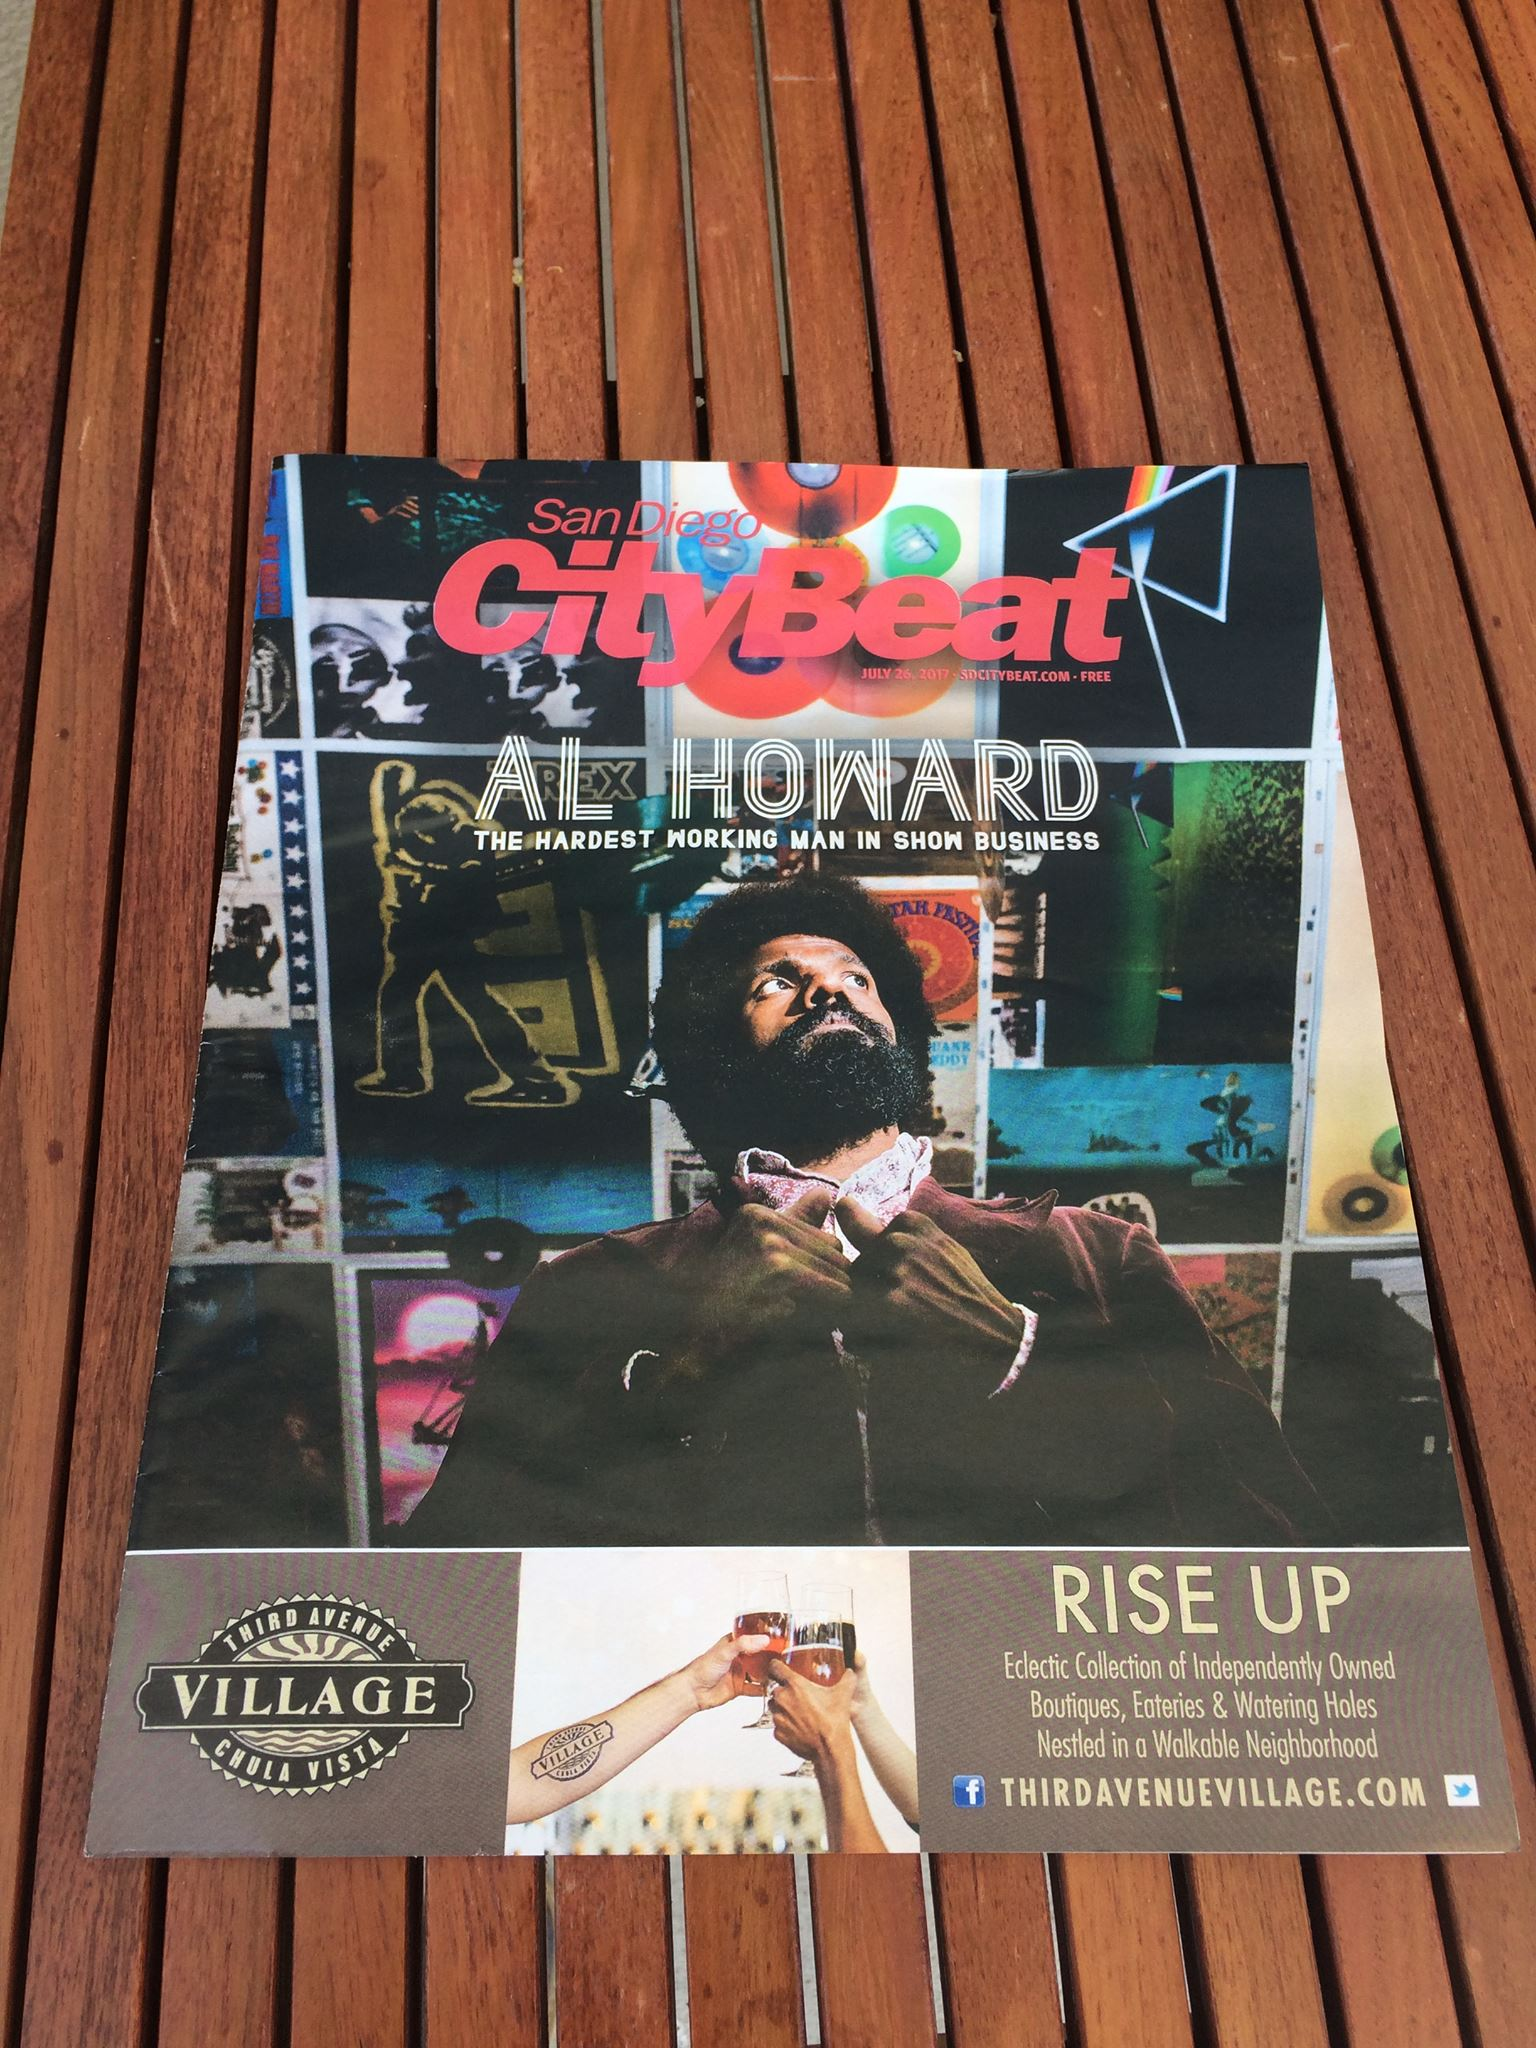 Al's on the cover of SD CityBeat - RISE UP